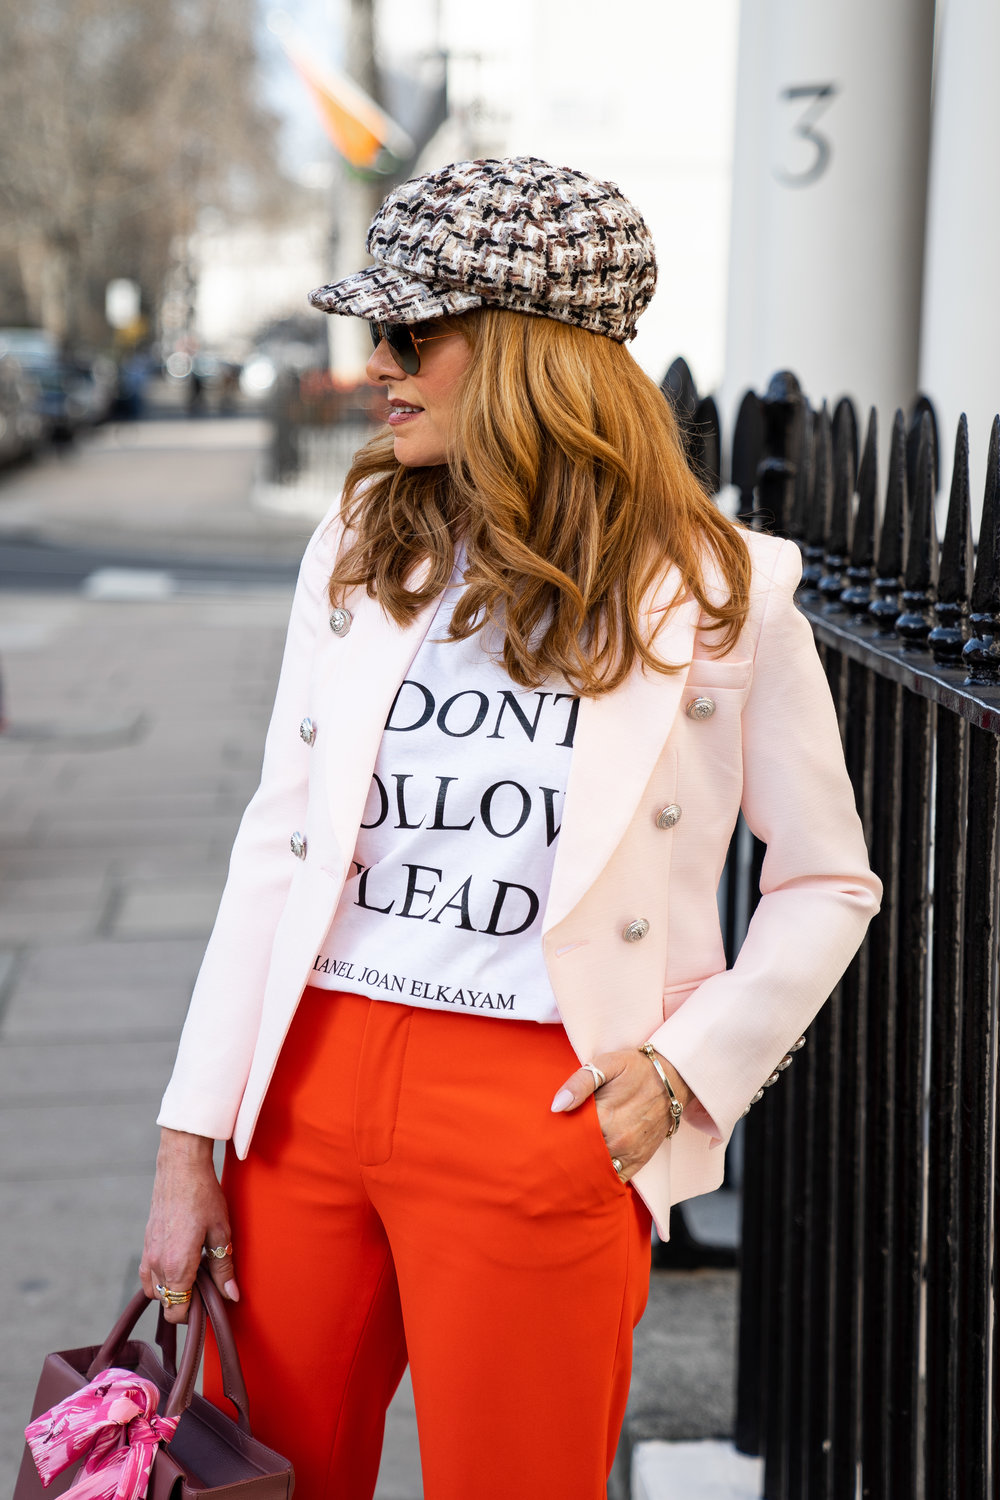 The Style Bible - I Don't Follow I Lead, style blogger Sarah Bacchus, Real blogger images, behind the scenes, unseen images,